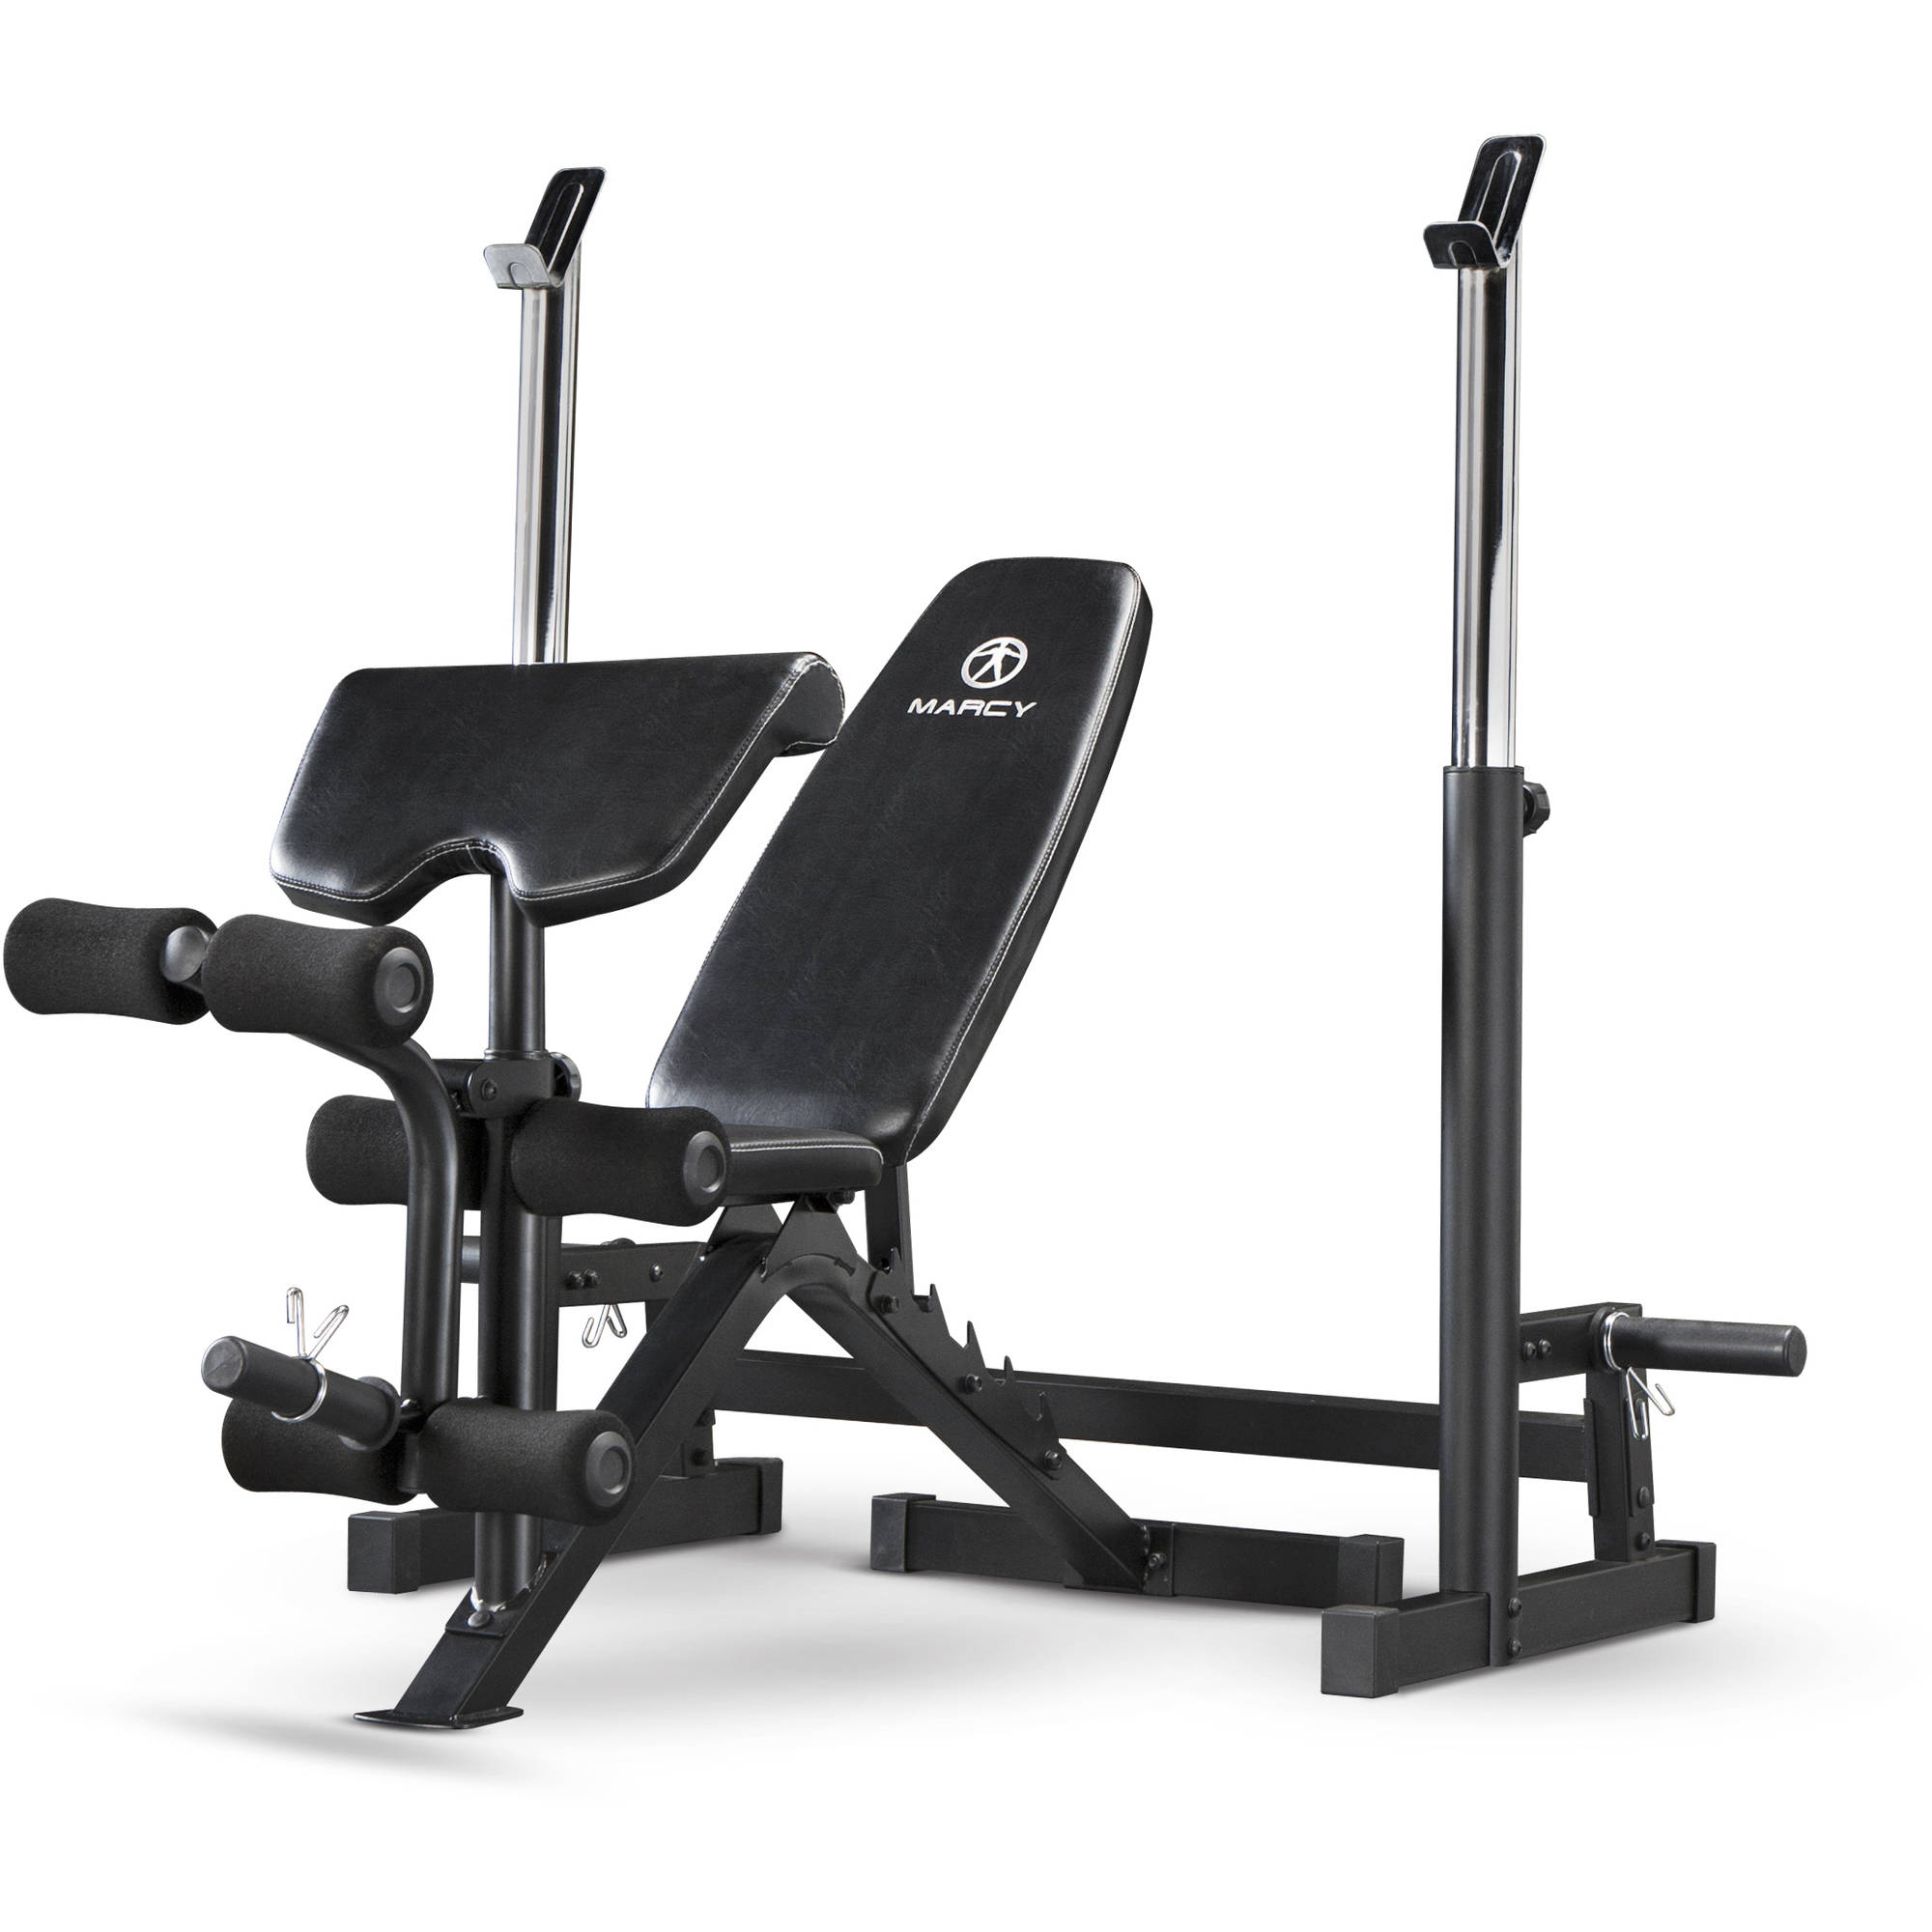 Marcy Deluxe Olympic Bench with Rack